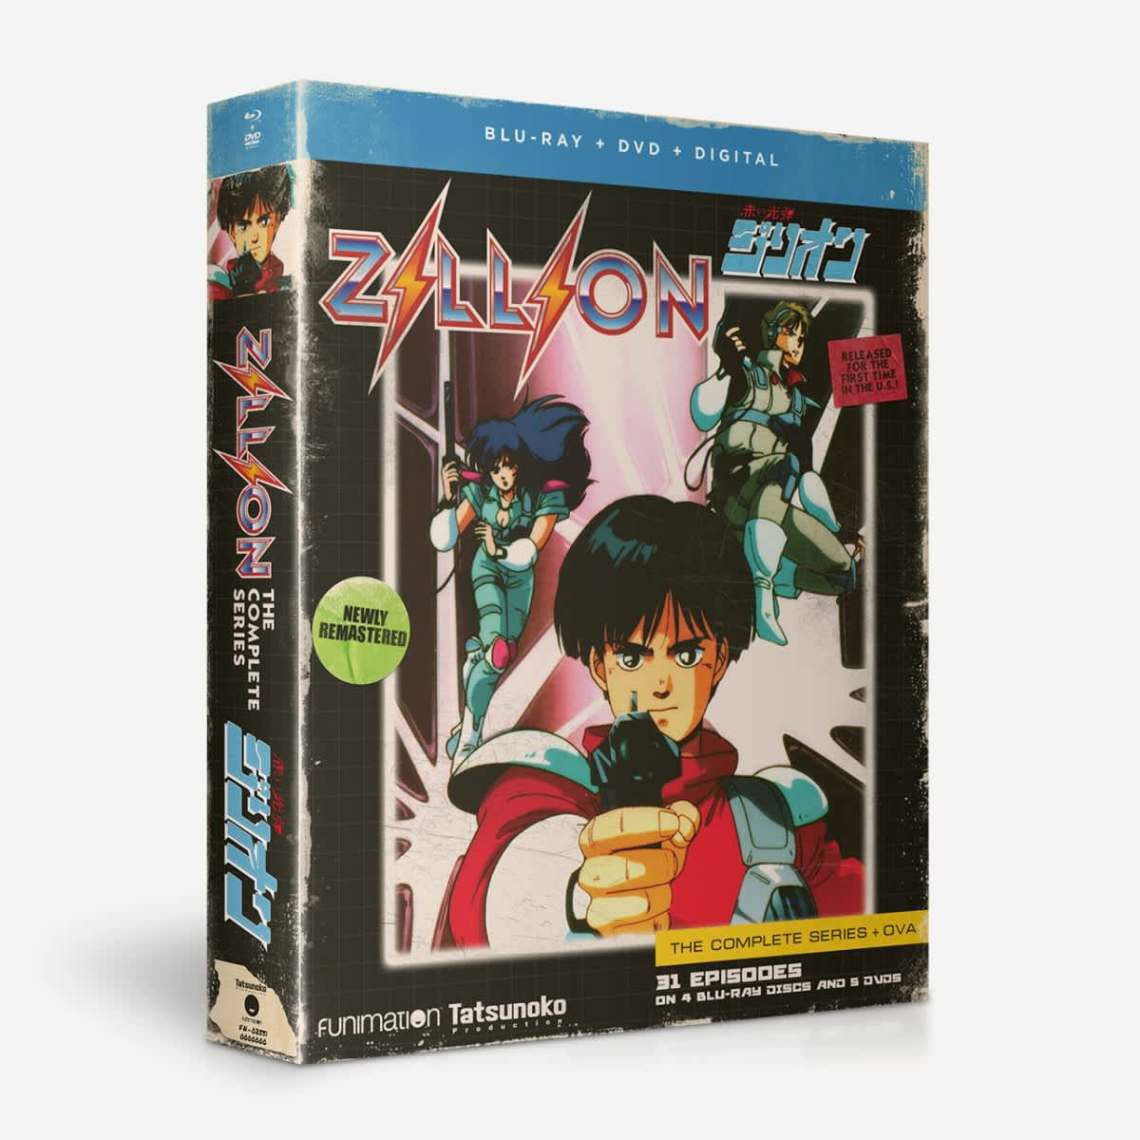 zillion-the-complete-series-bd-dvd-fun-digital-_sub_only__1_0817.jpg